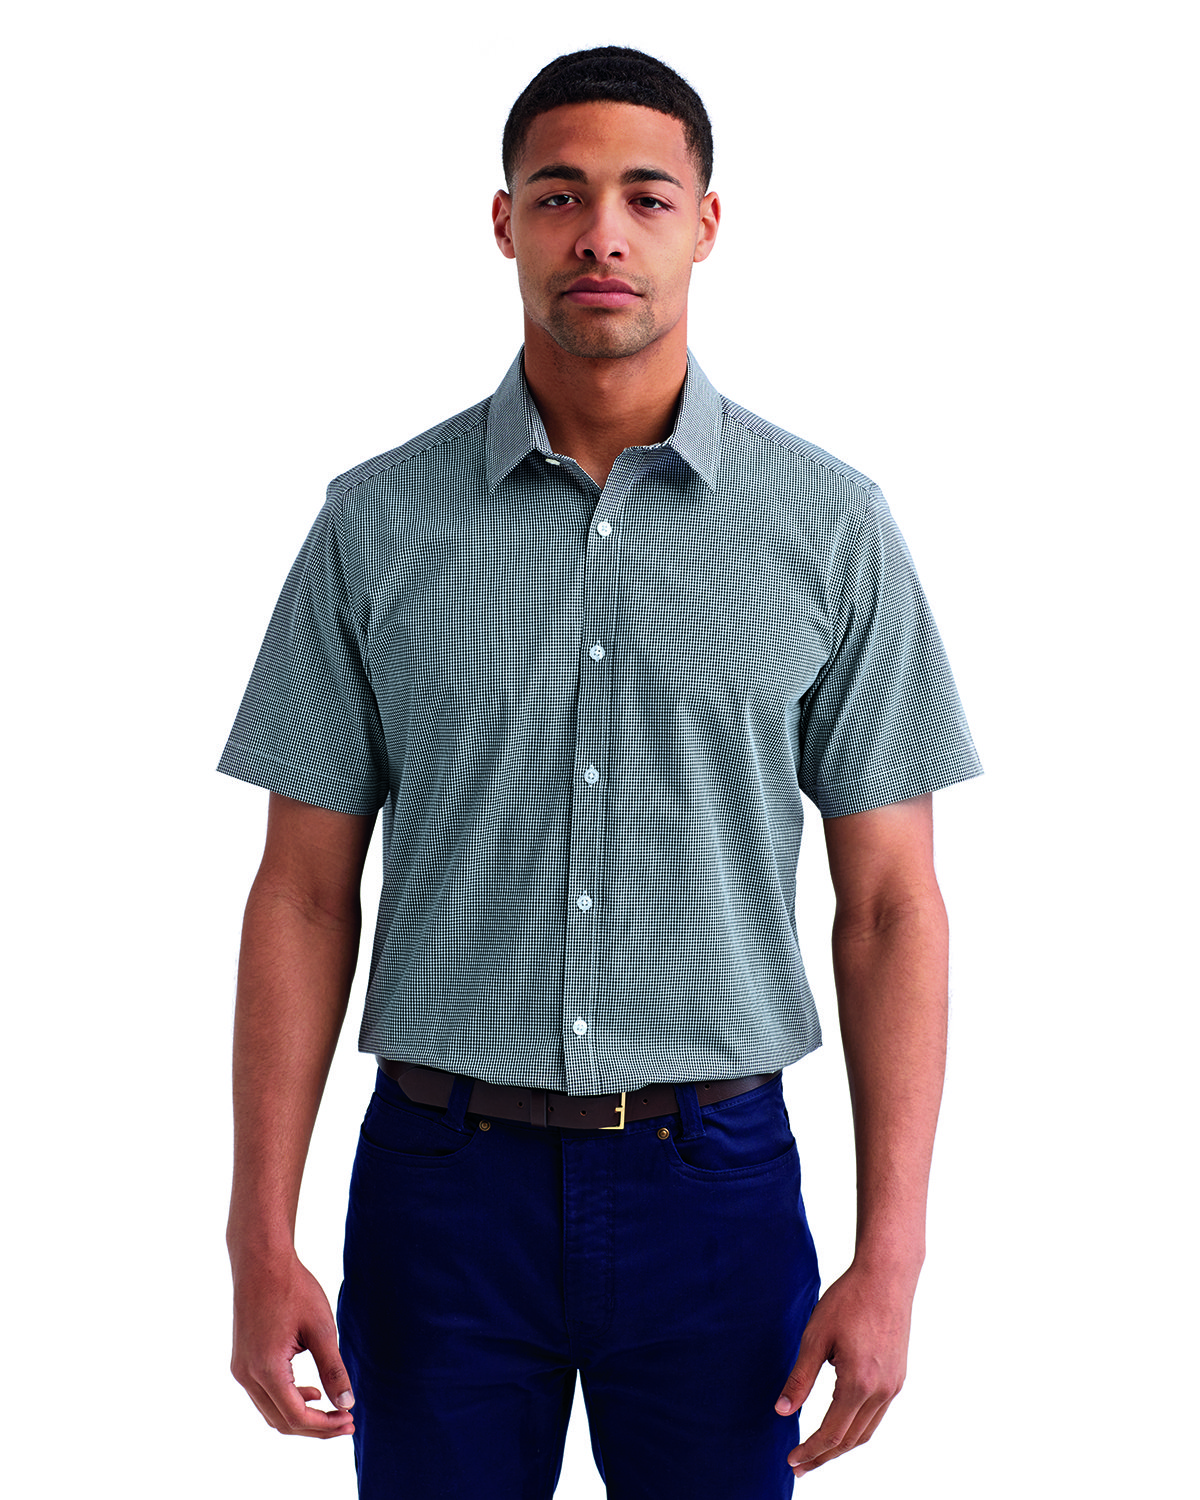 Artisan Collection by Reprime Mens Microcheck Gingham Short-Sleeve Cotton Shirt BLACK/ WHITE